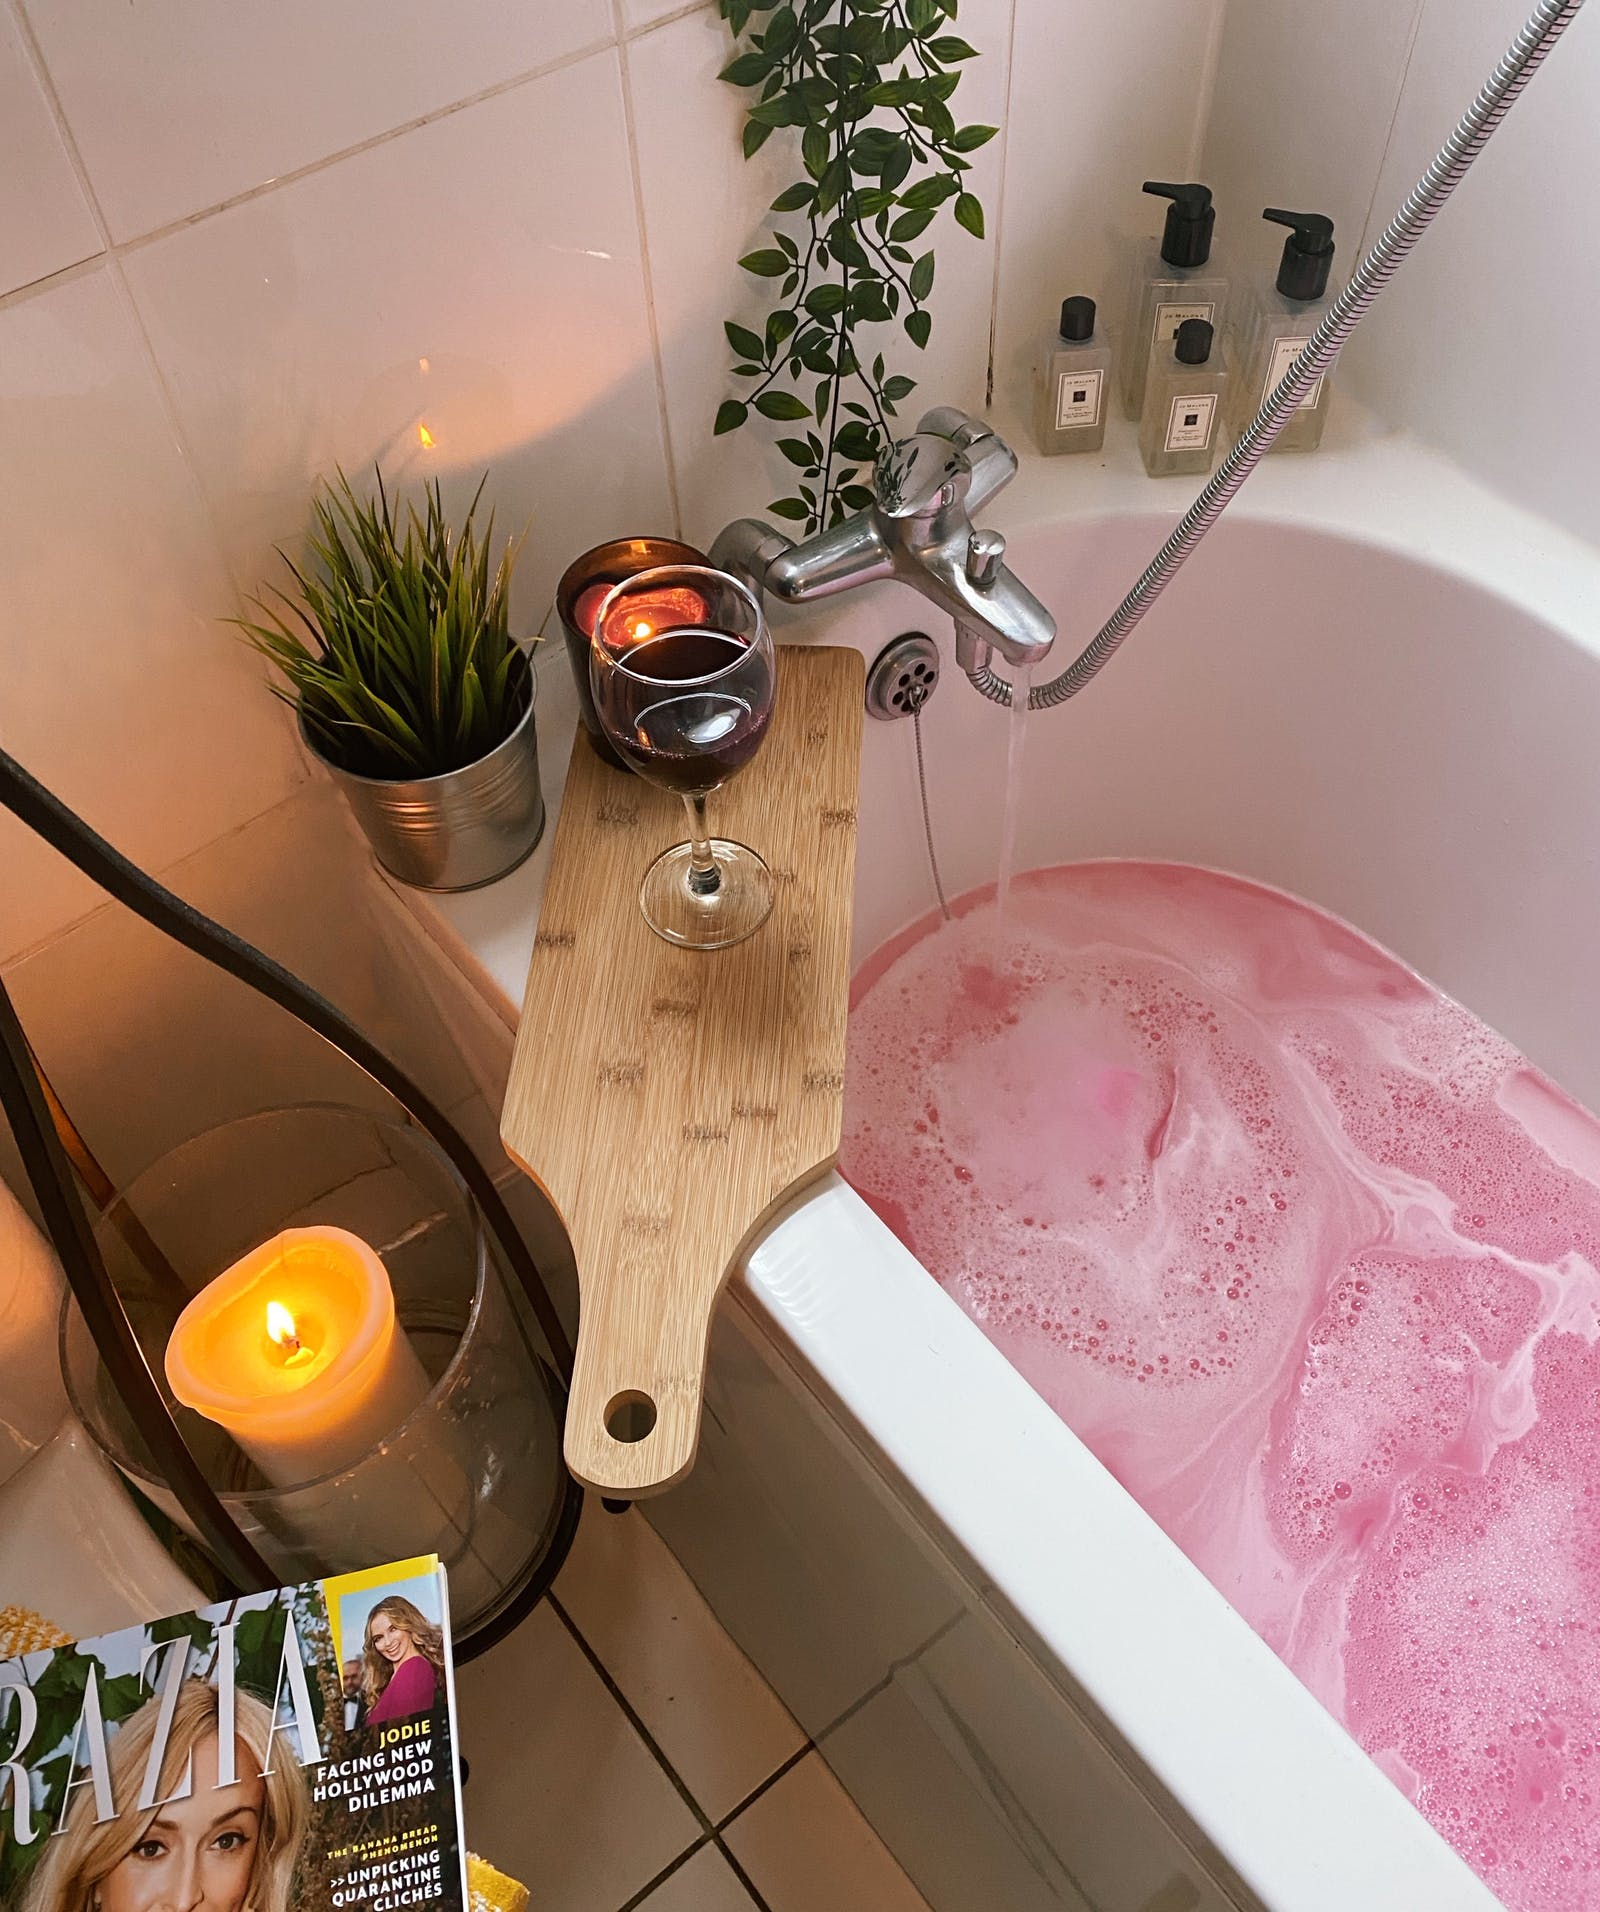 Bath with pink water and a wooden board with a glass of wine